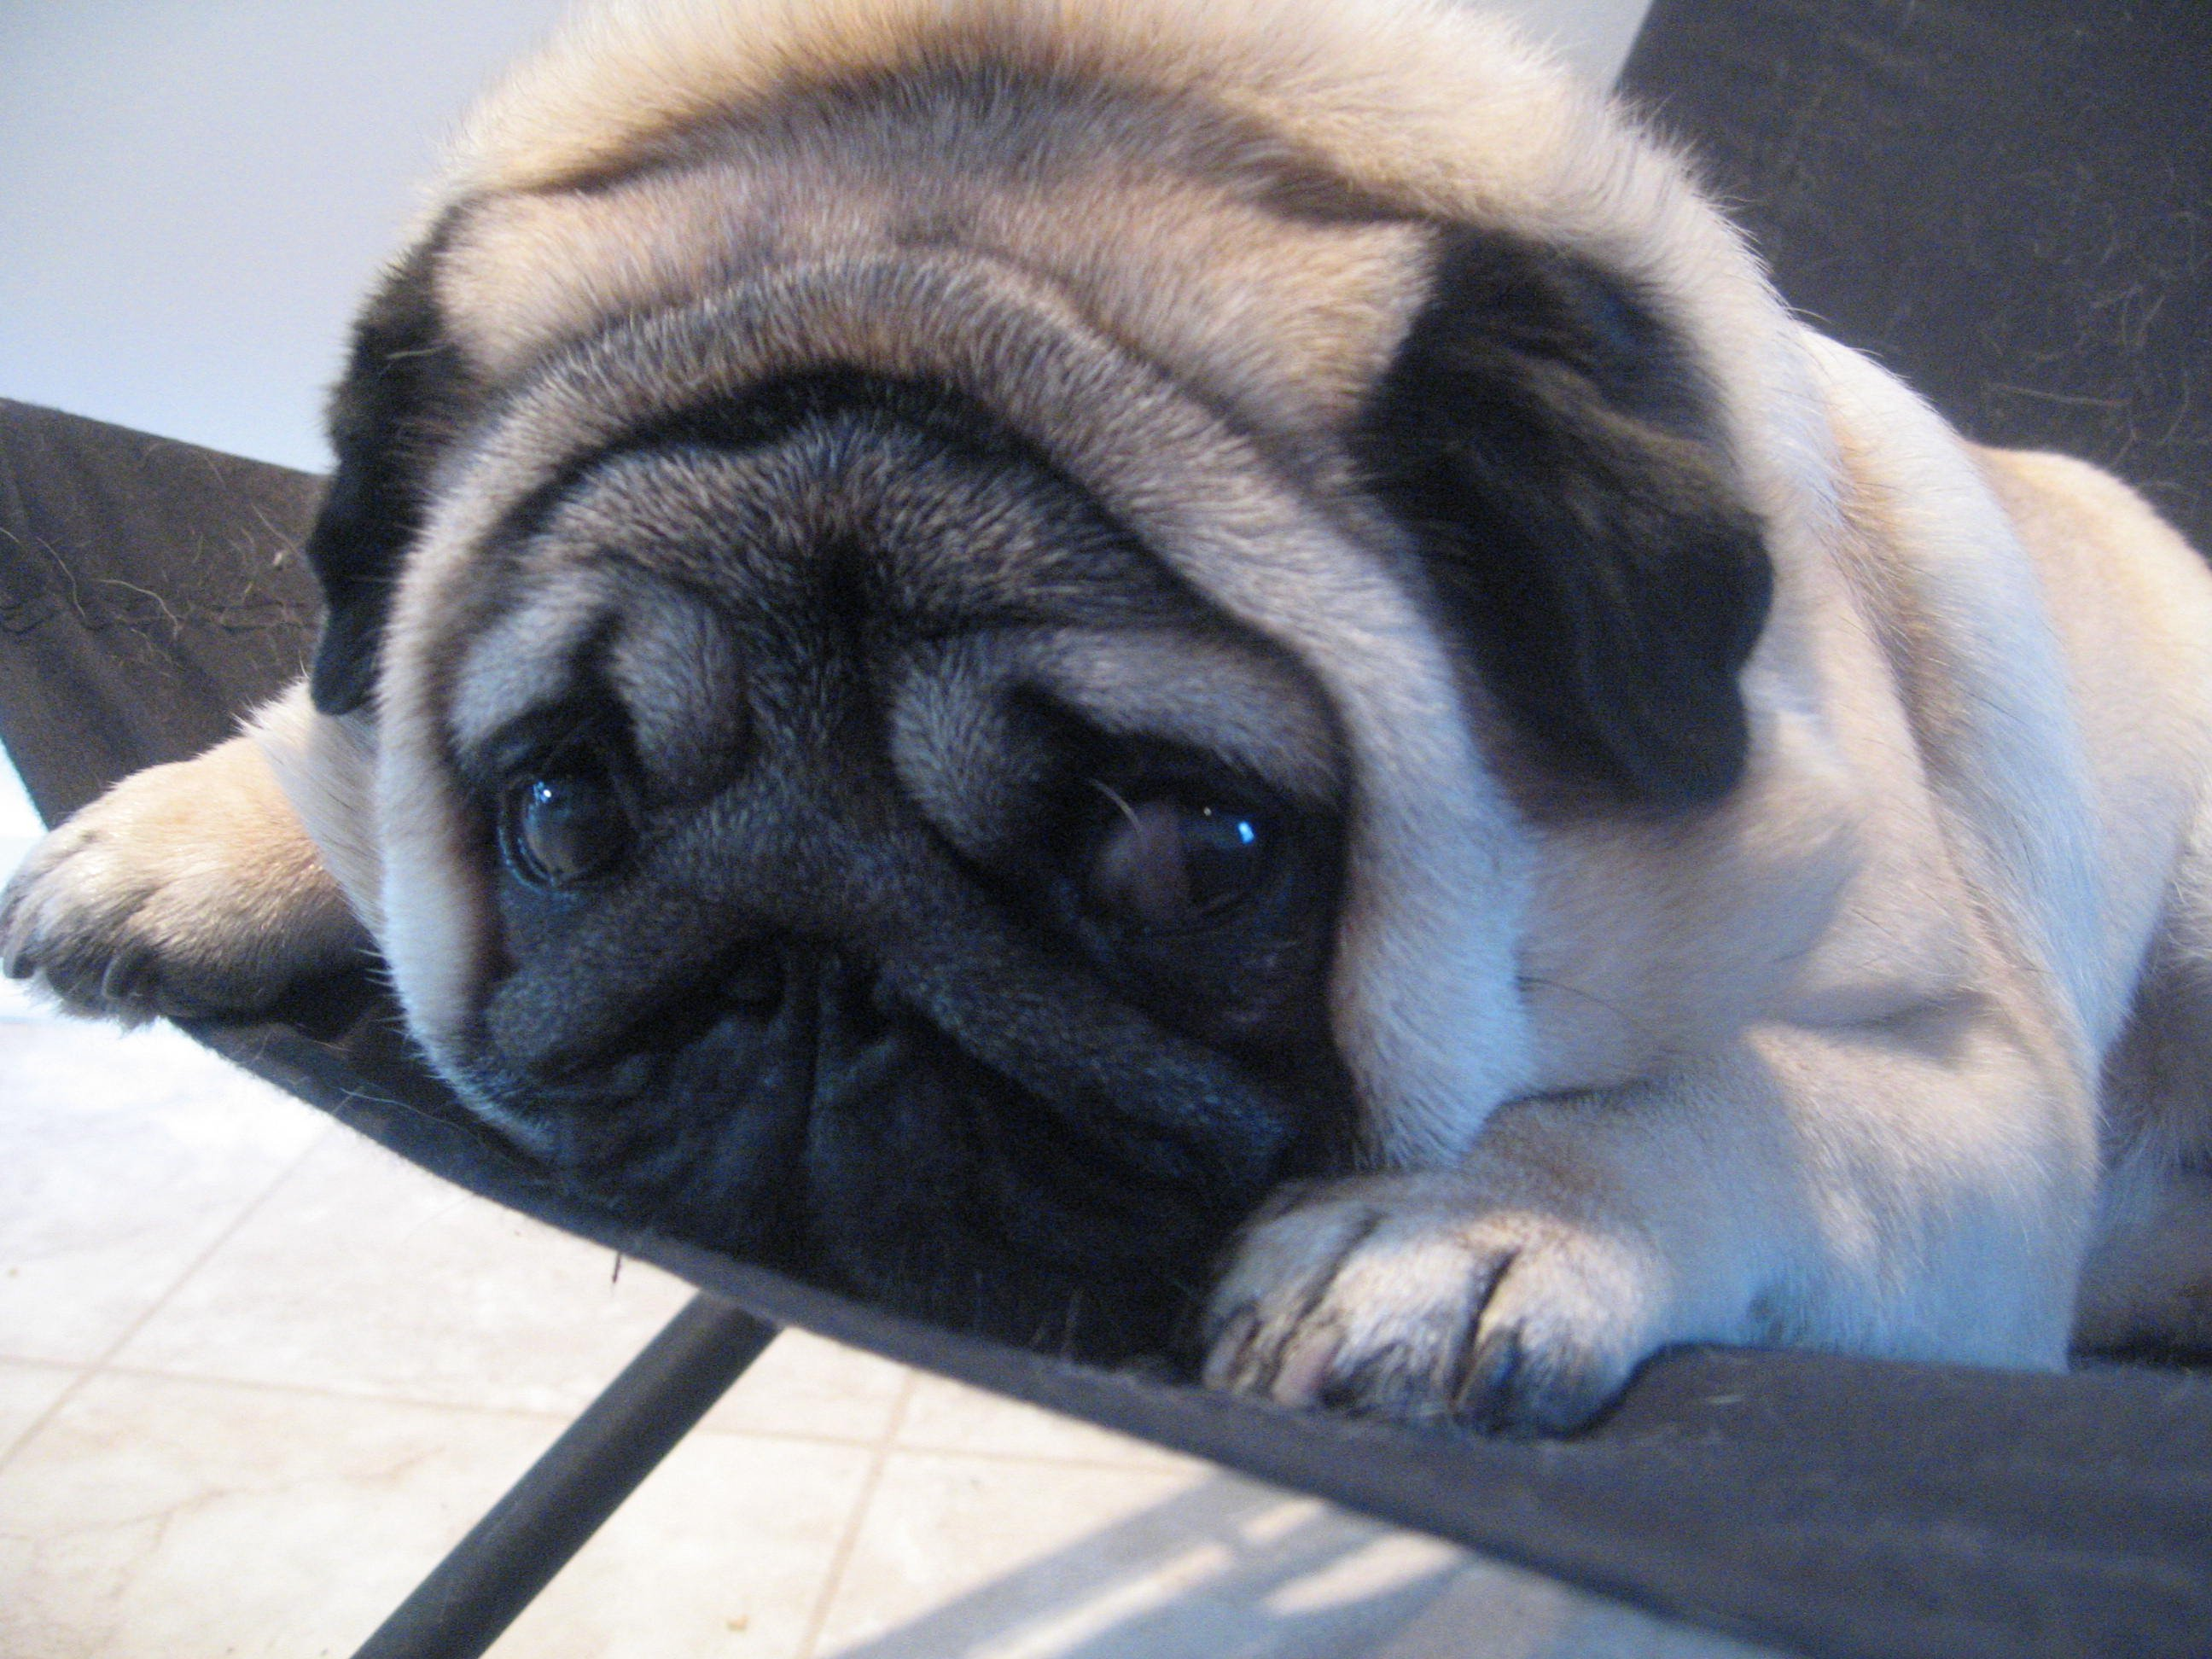 Funny Pug dog photo and wallpaper Beautiful Funny Pug dog pictures 2592x1944